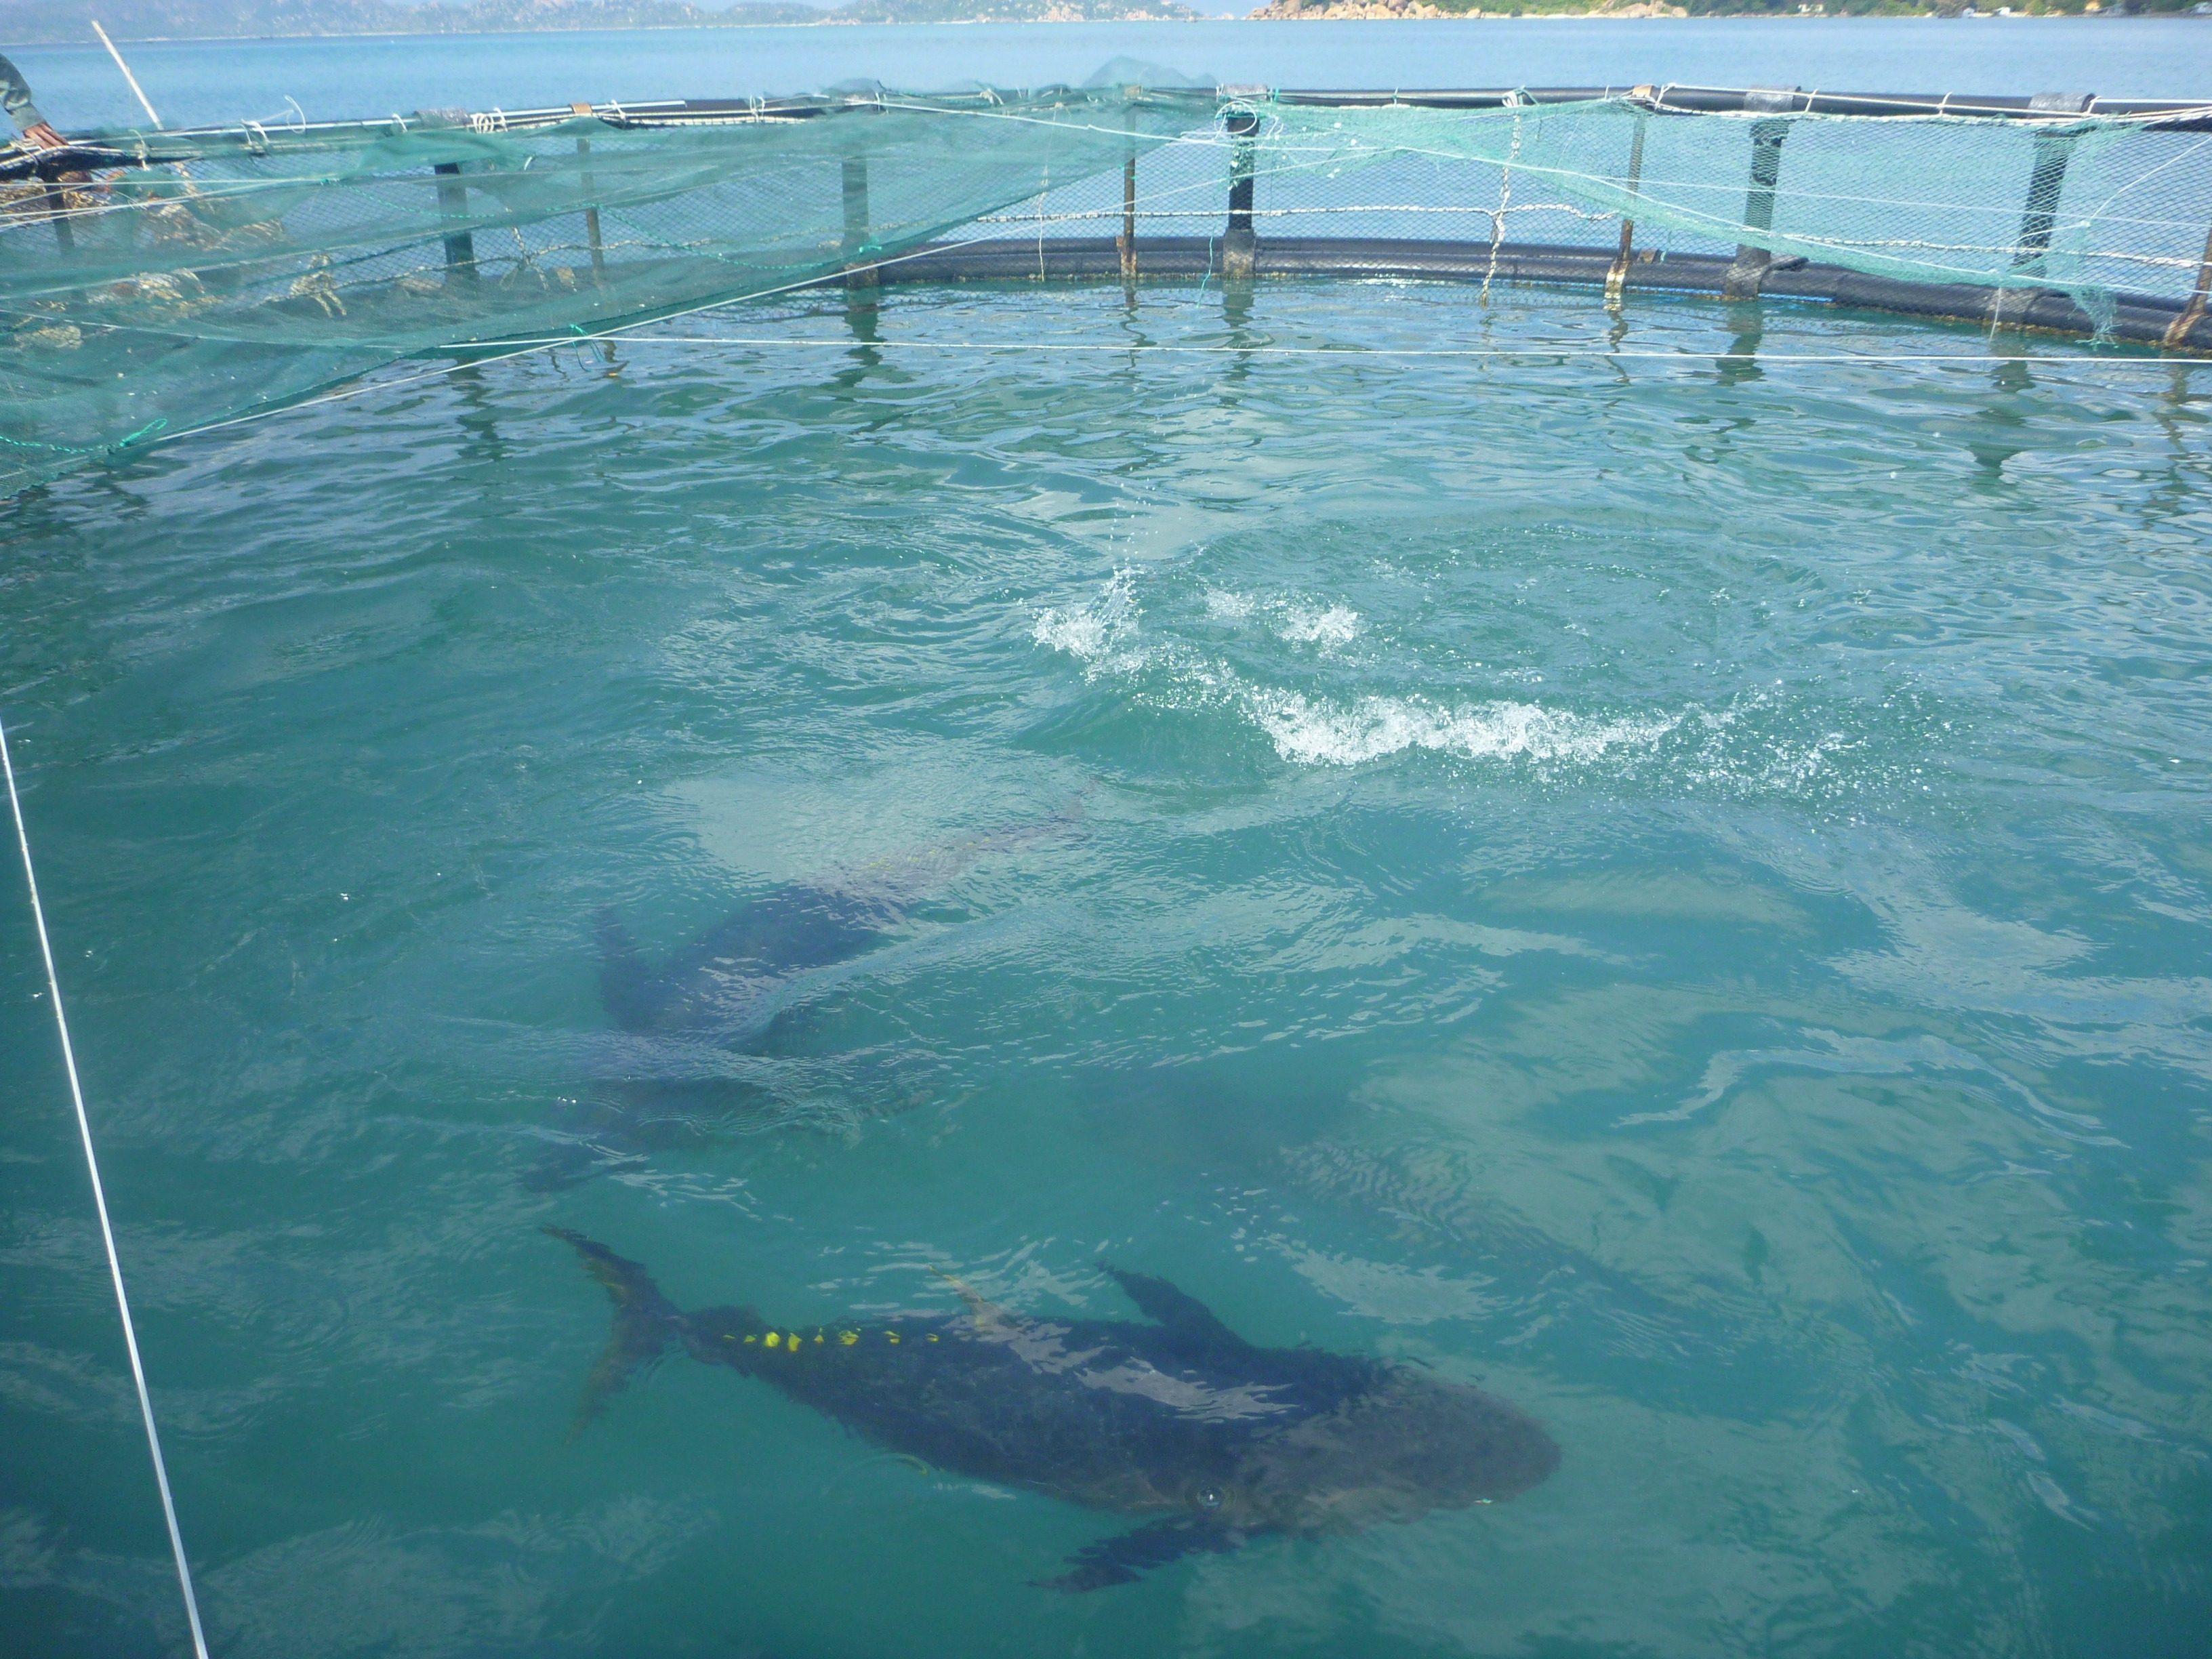 Cam Ranh, Vietnam - March 16, 2012: Cage Farming Of Yellowfin Tuna In The Bay Of Cam Ranh In Vietnam